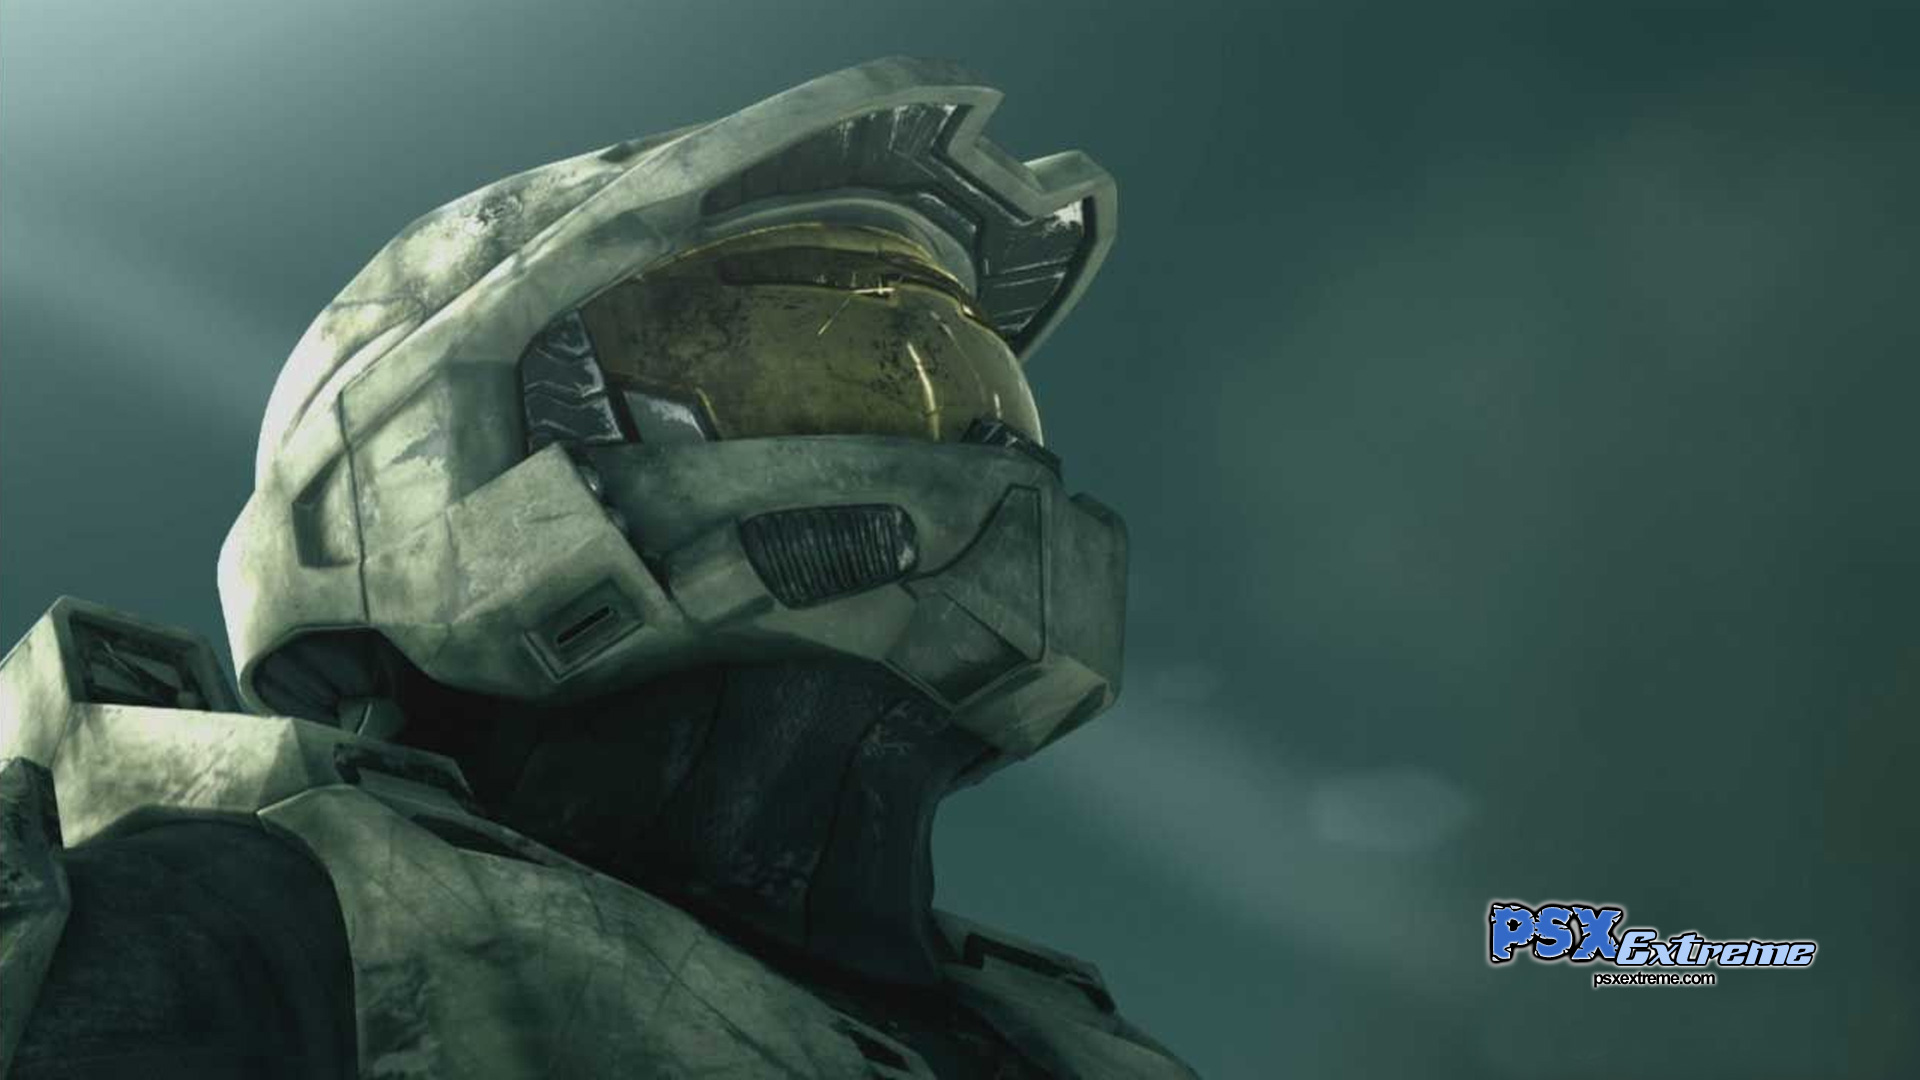 Free Download Halo 3 Wallpapers Halo 3 Wallpapers Halo 3 Hd